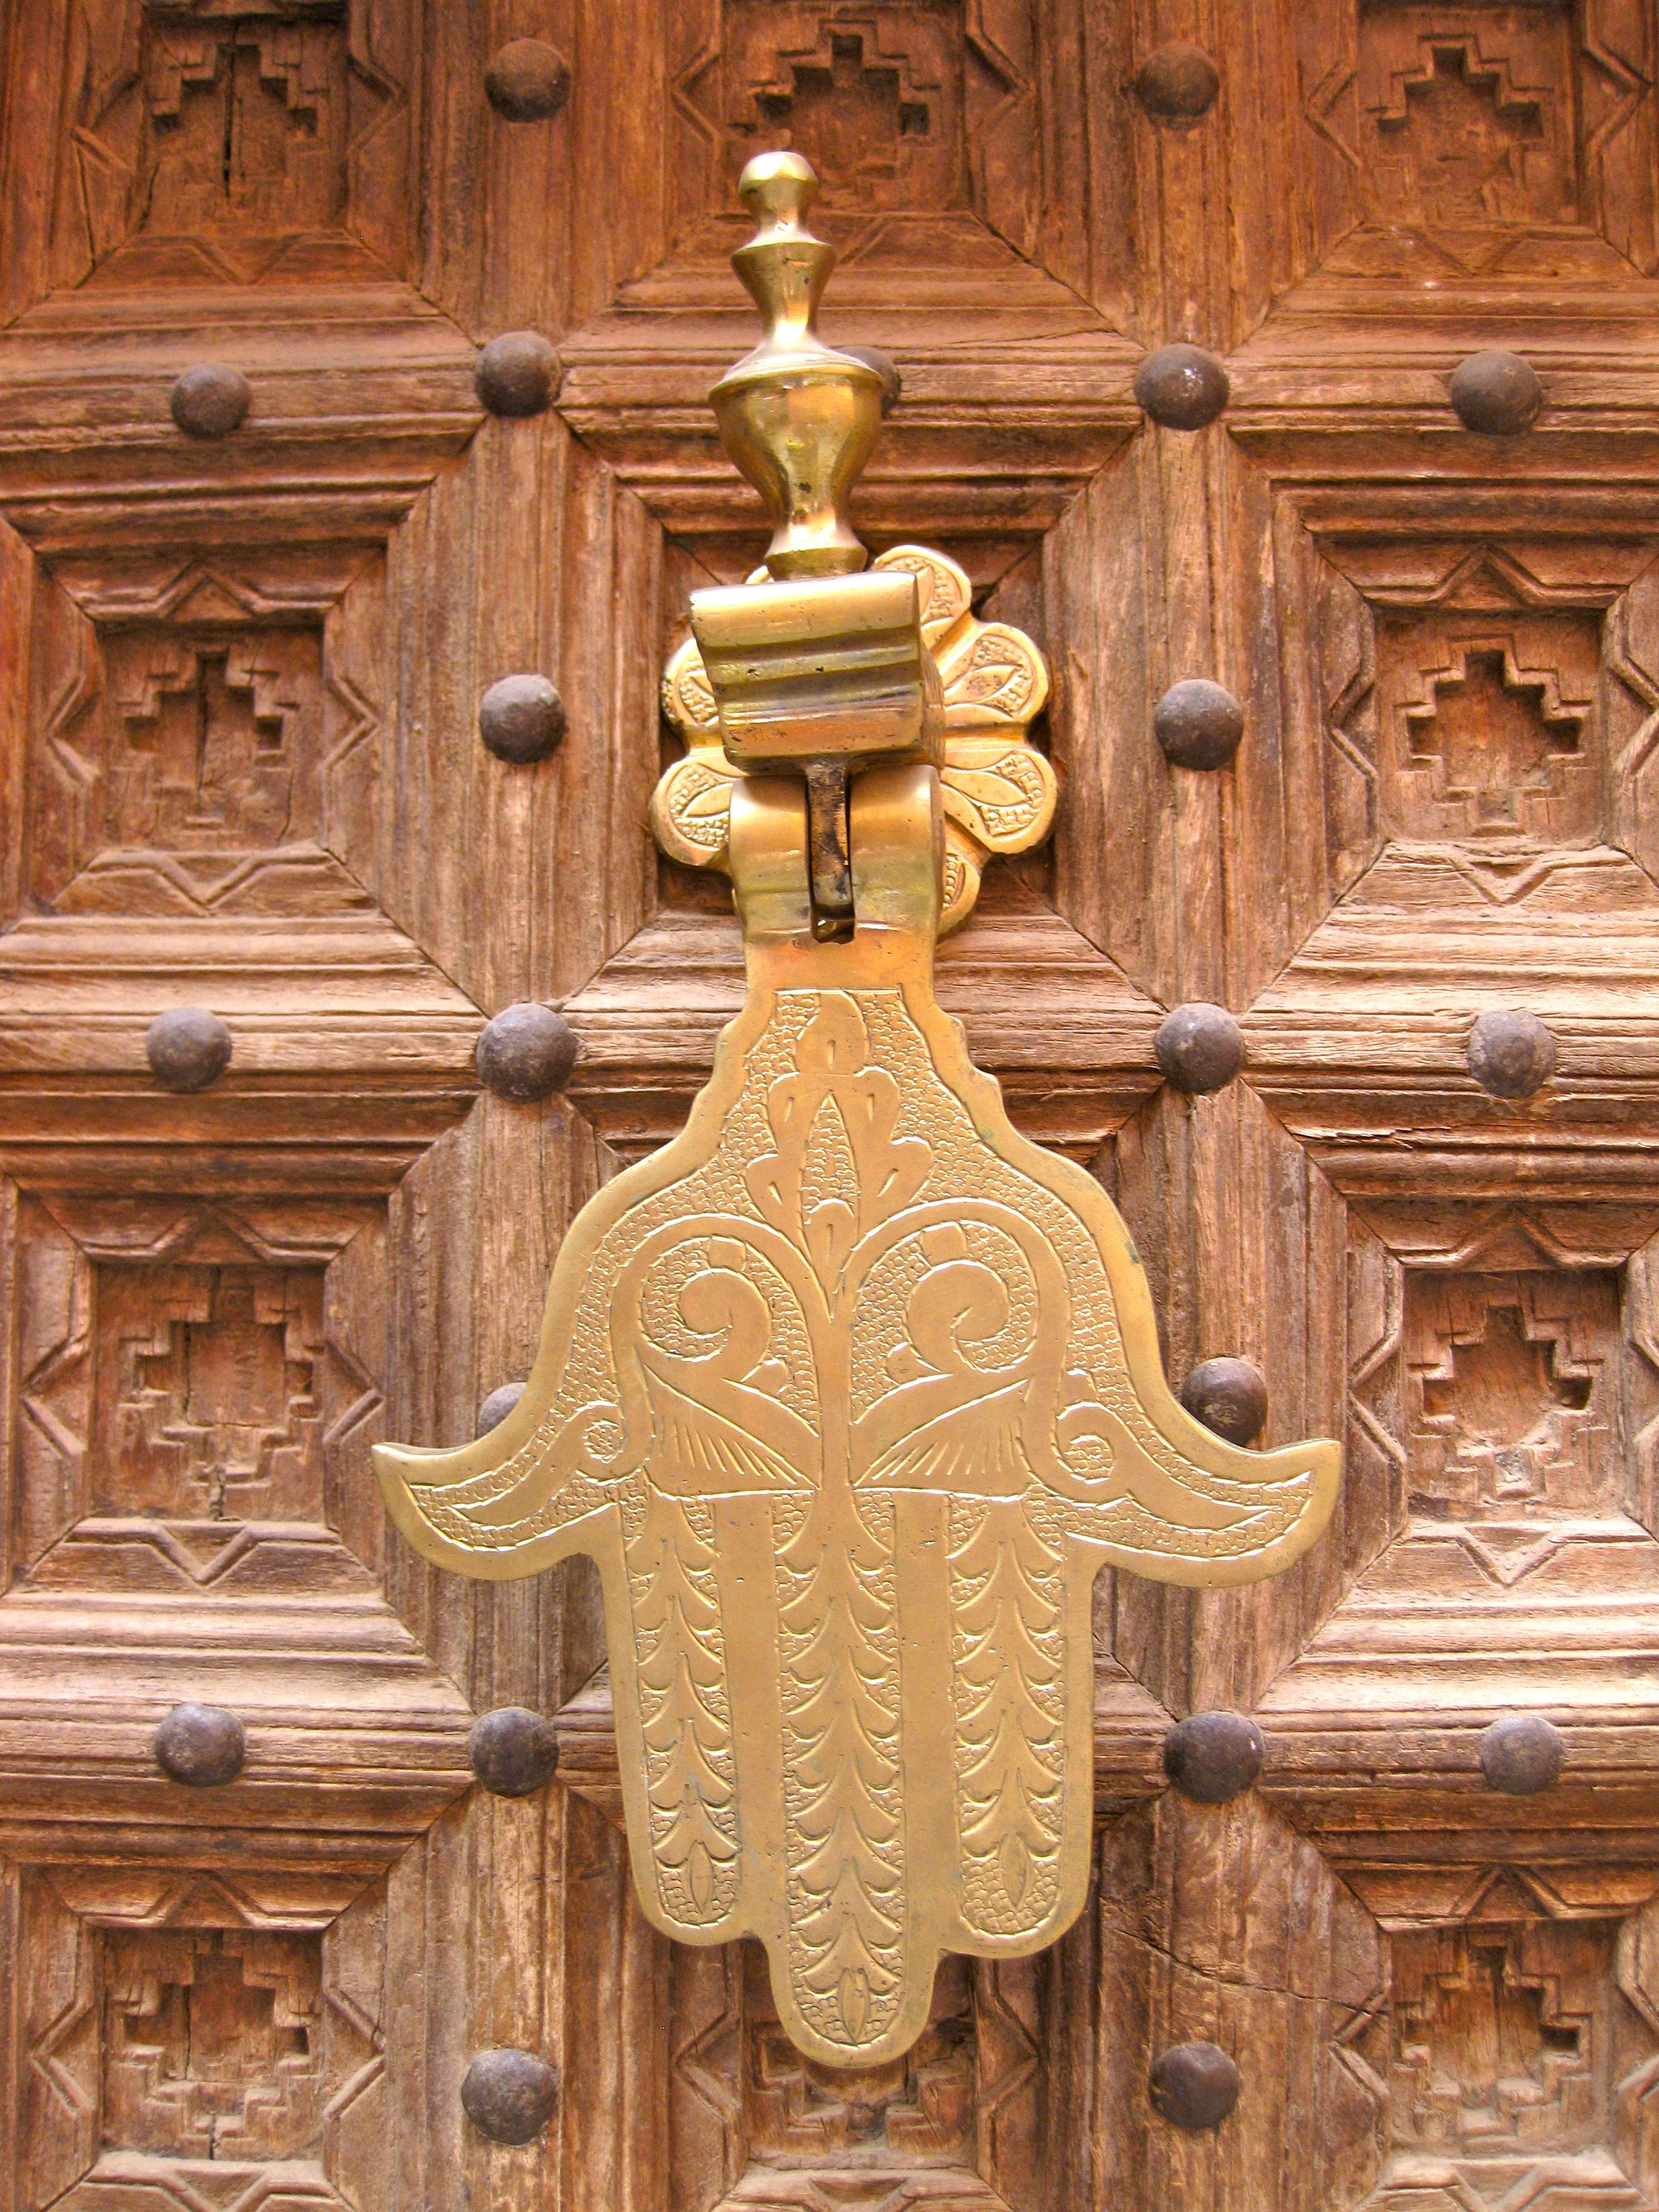 A hamsa door knocker in marrakech morocco places and things iuve